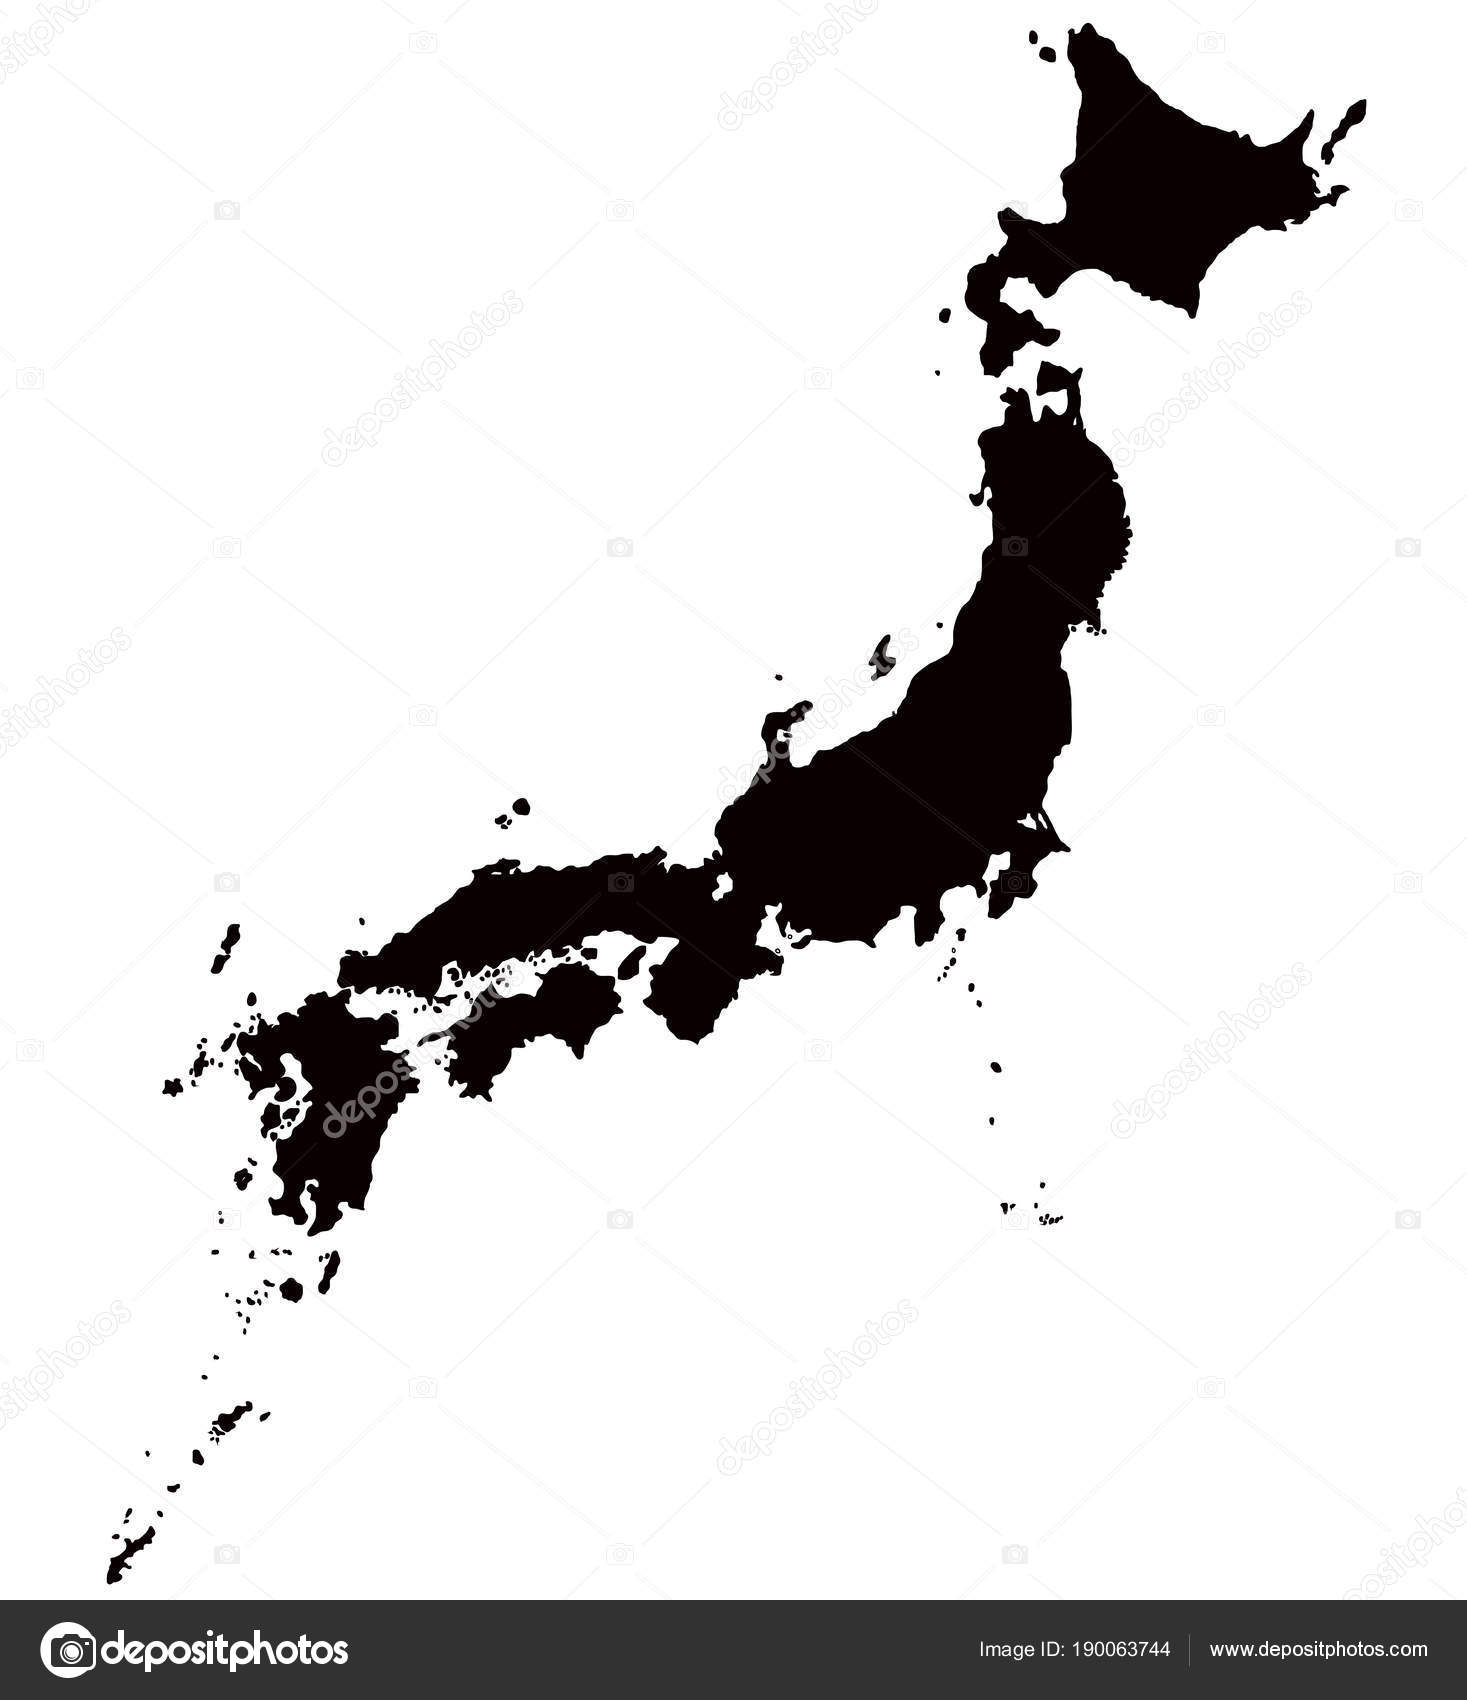 Japan map outline vector — Stock Vector © 1000pixels #190063744 on map of georgia, map of south america, map of germany, map of canada, honshu japan, hamamatsu japan, yokota japan, sendai japan, map of us, languages spoken in japan, map of florida, map of europe, winter in japan, map of ohio, hyogo japan, map of california, map of the united states, map of north carolina, map of china, map of virginia, kawasaki japan, kanagawa japan, world map japan, printable map japan, hakone japan, map of mexico, map of usa, map of the world, nikko japan, gifu japan, nagoya japan, hiroshima japan, map of italy, info about japan, takayama japan, mountains in japan, map of africa, map of texas,